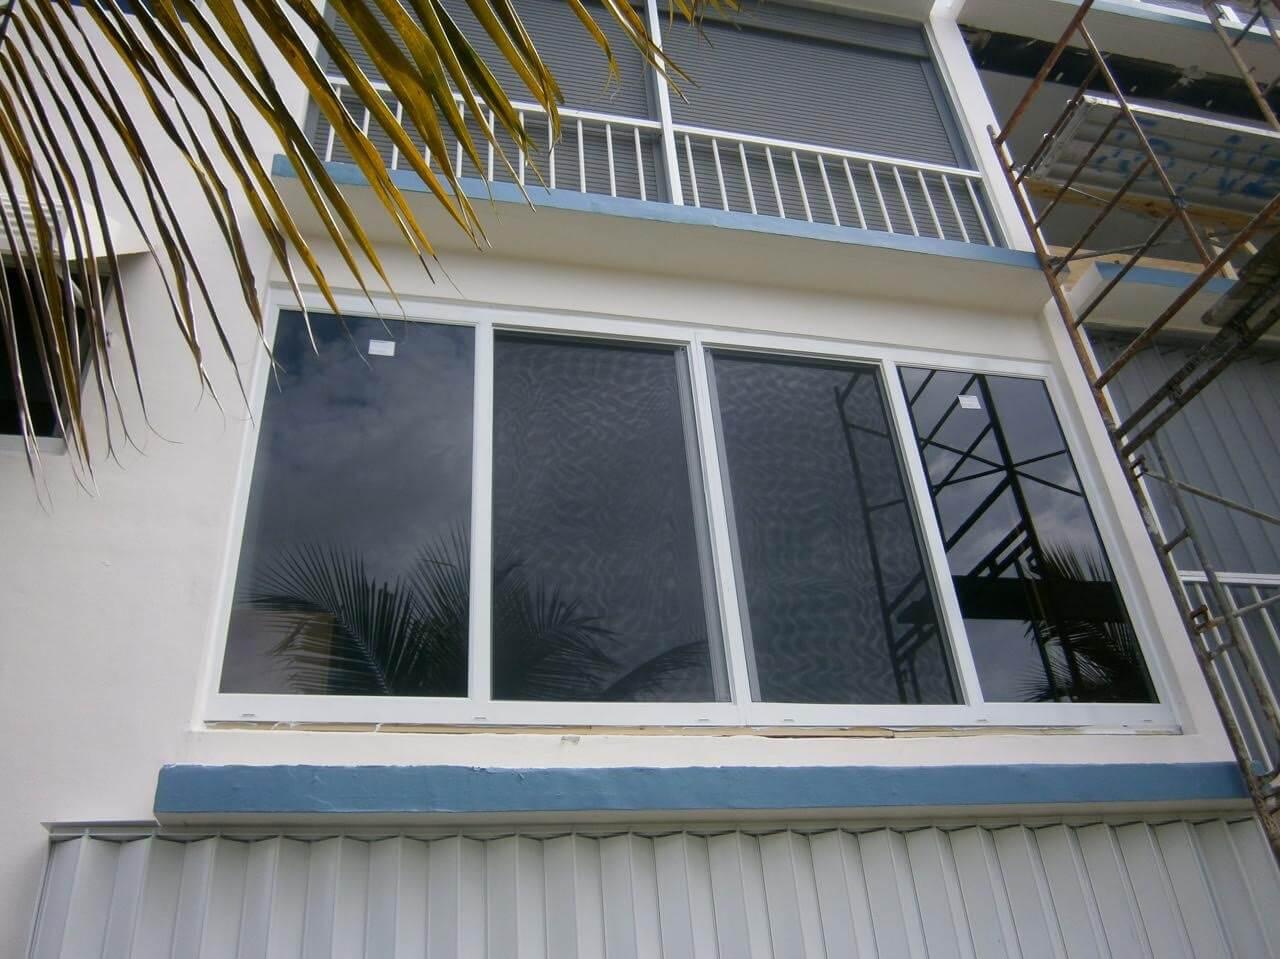 Hurricane impact resistant windows doors north palm beach fl north palm beach hurricane impact windows doors rubansaba